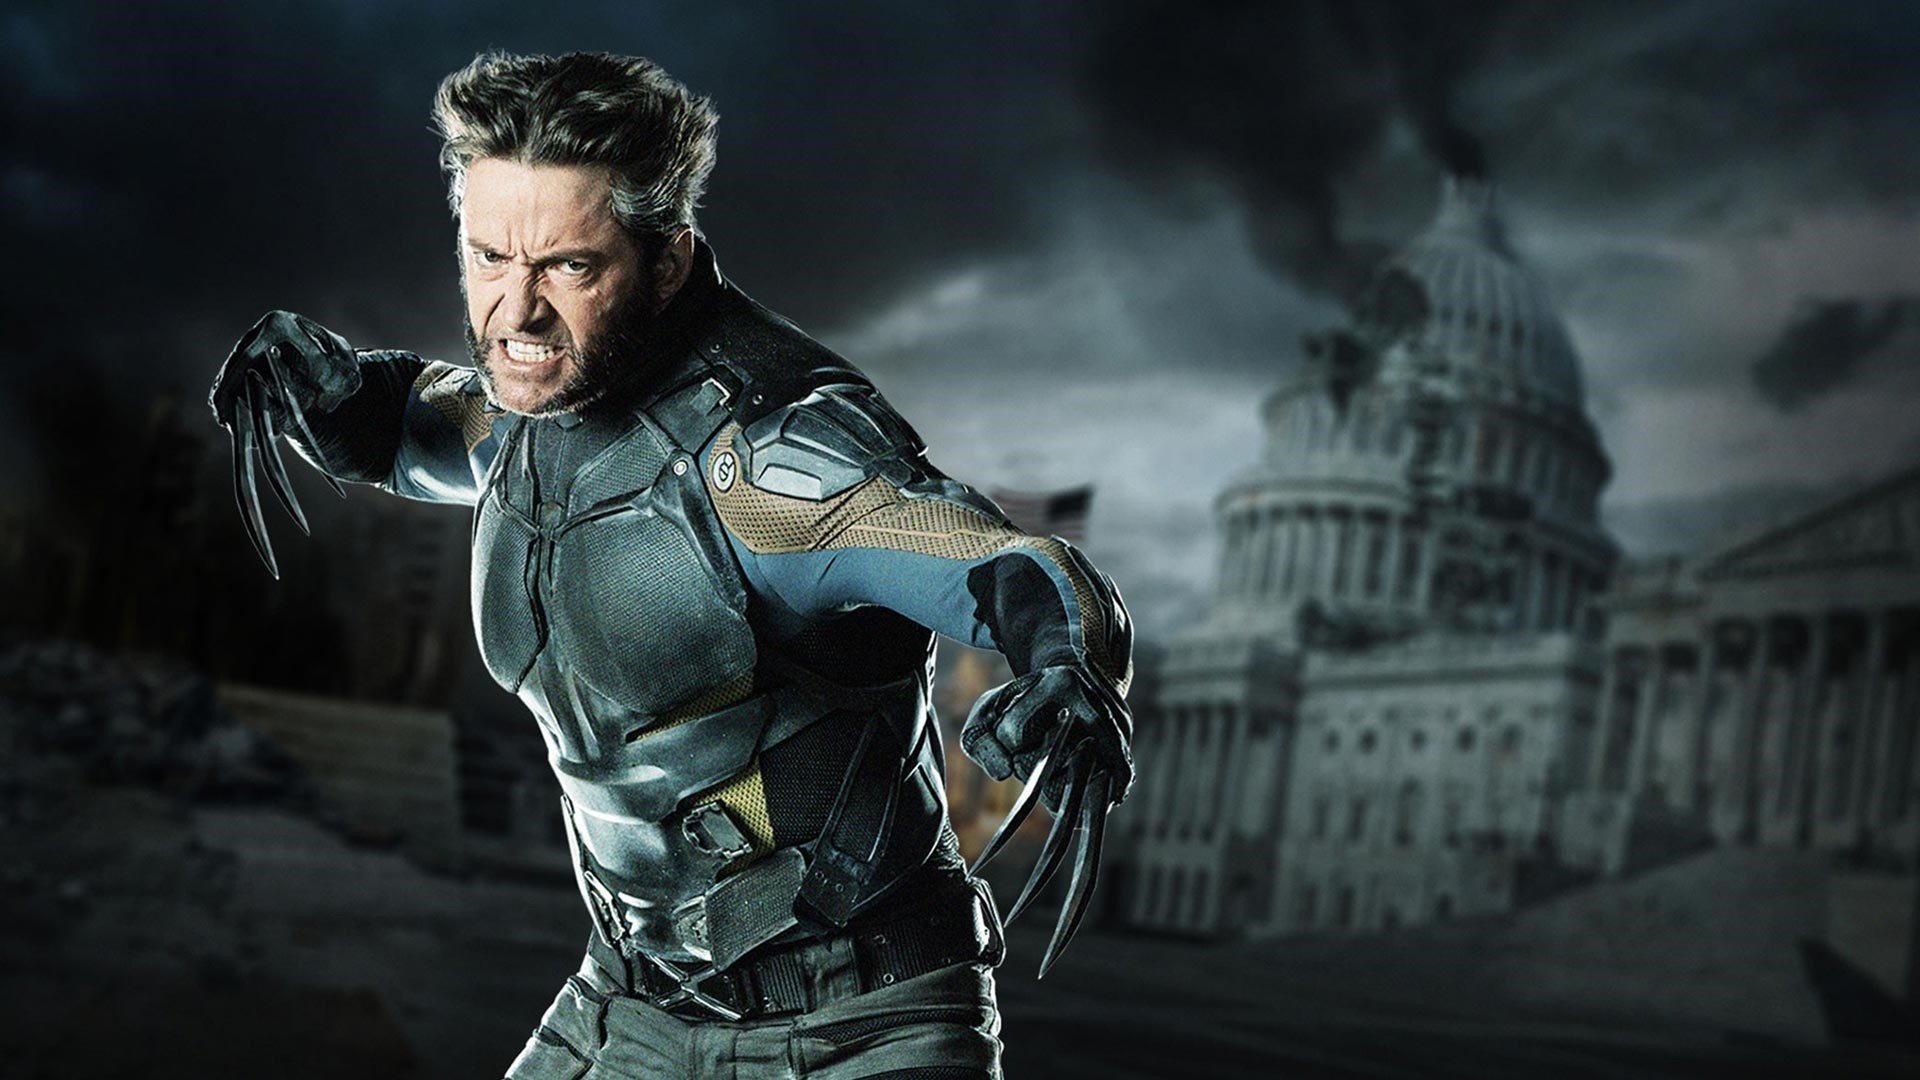 1920x1080 wolverine x men days of future past wallpaper hd marvel